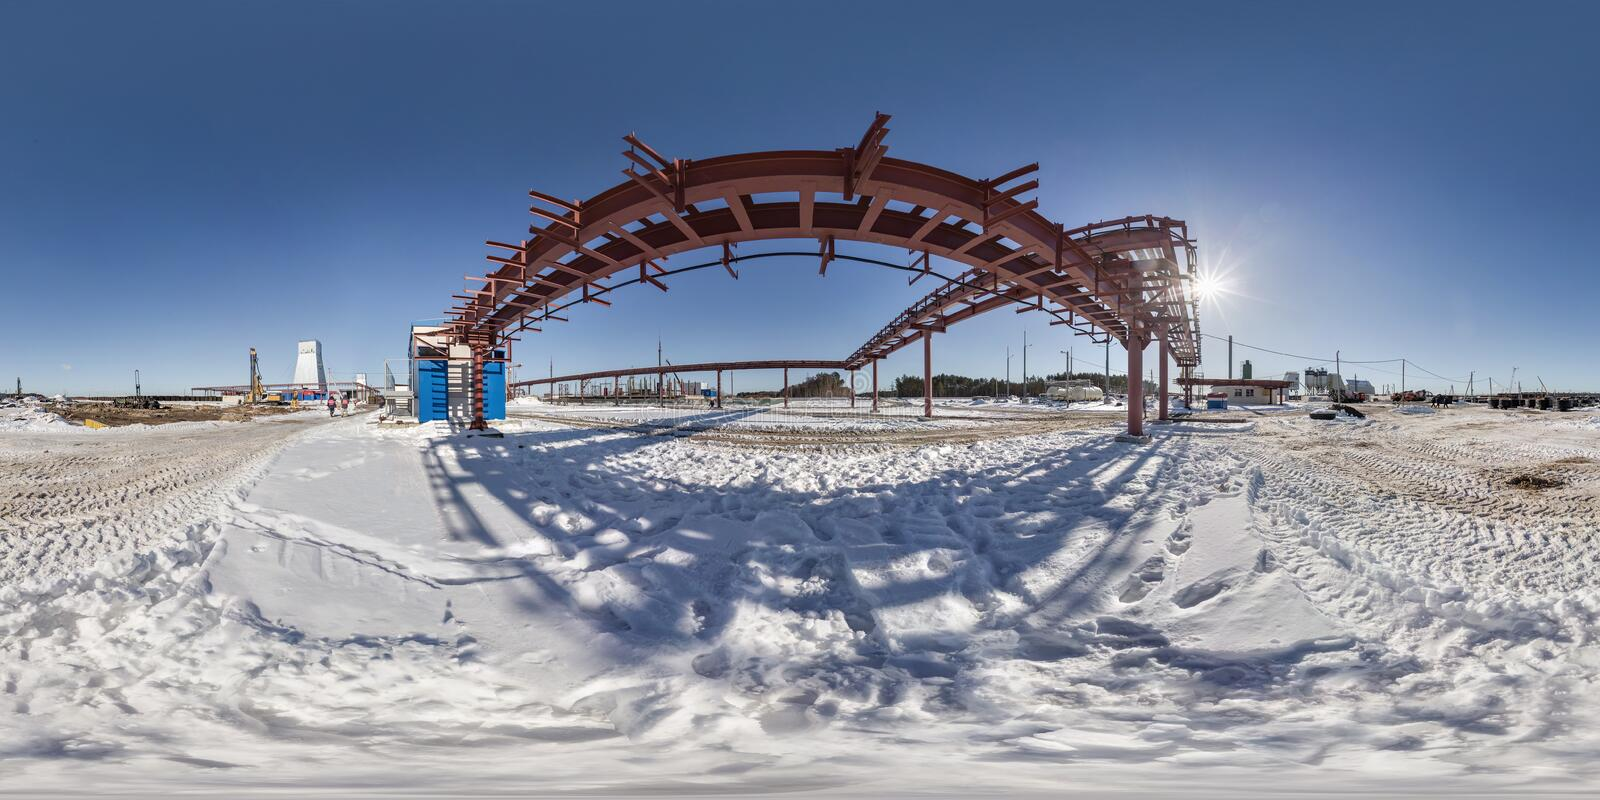 Full seamless panorama 360 angle view in winter snow field place site construction of a mining plant in equirectangular. Equidistant spherical projection, VR stock photos